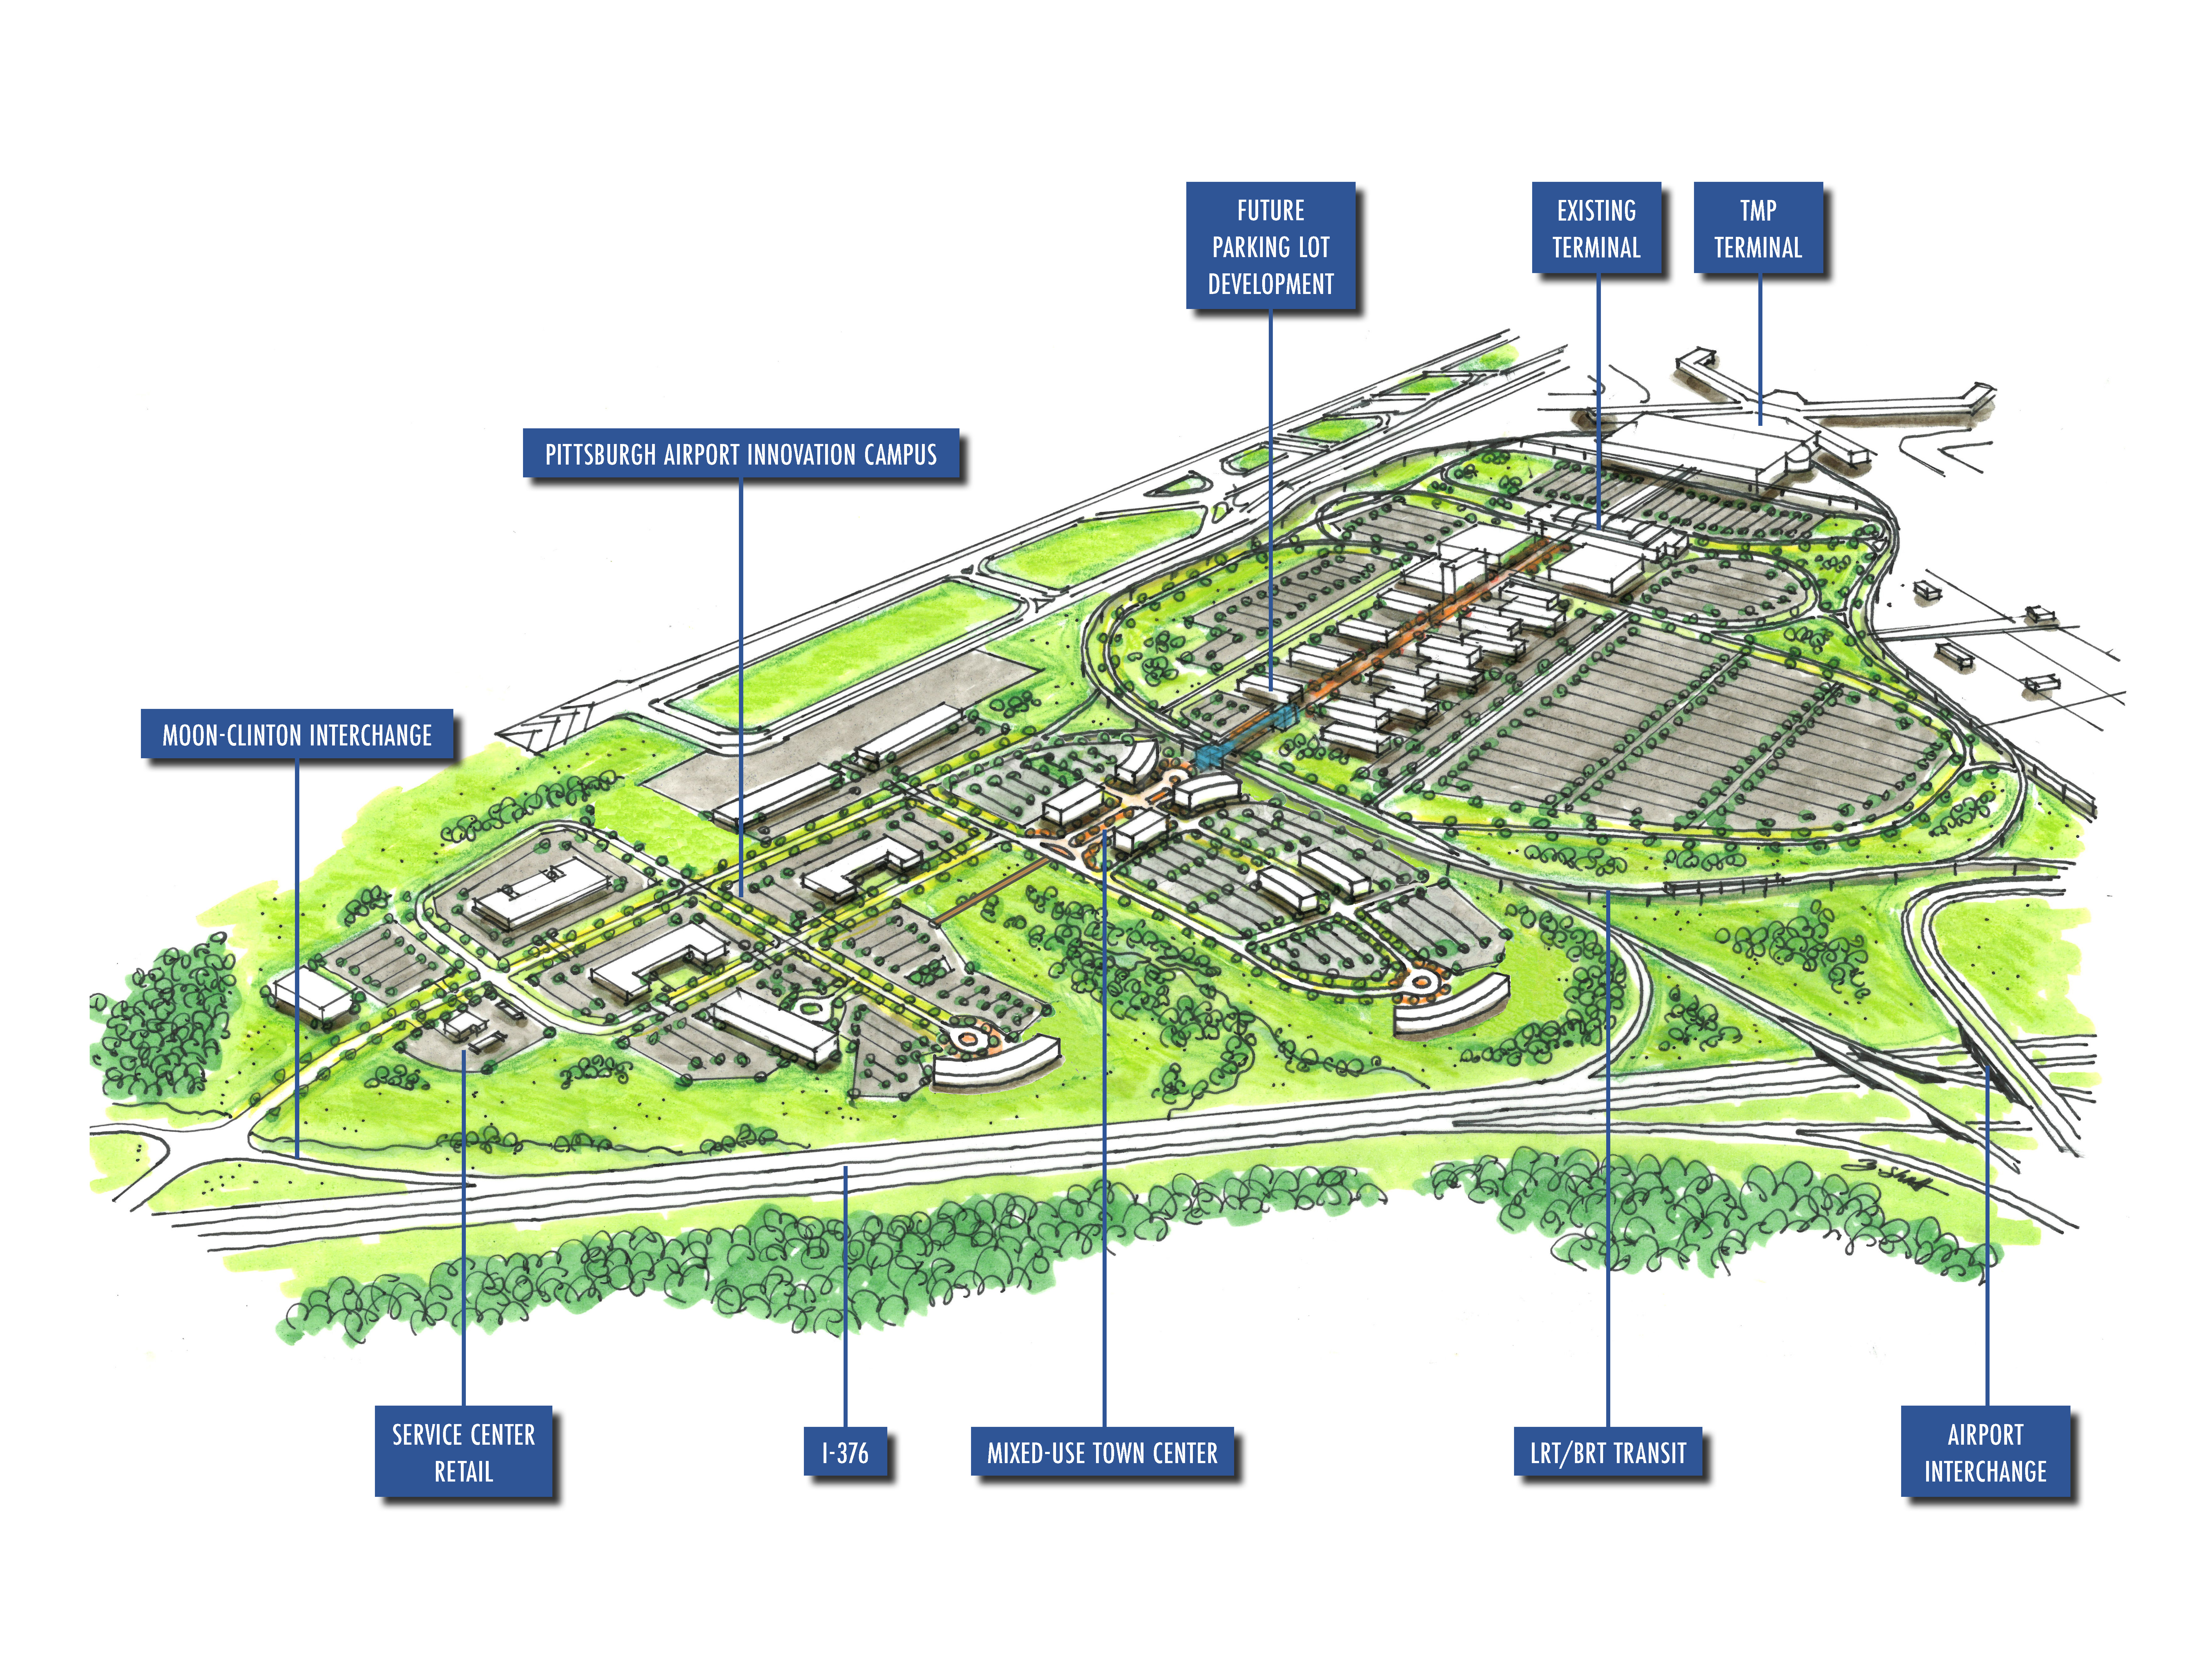 The Pittsburgh Airport Innovation Campus Is A 195 Acre Site That Will Feature Office E Research And Development Laboratories Manufacturing